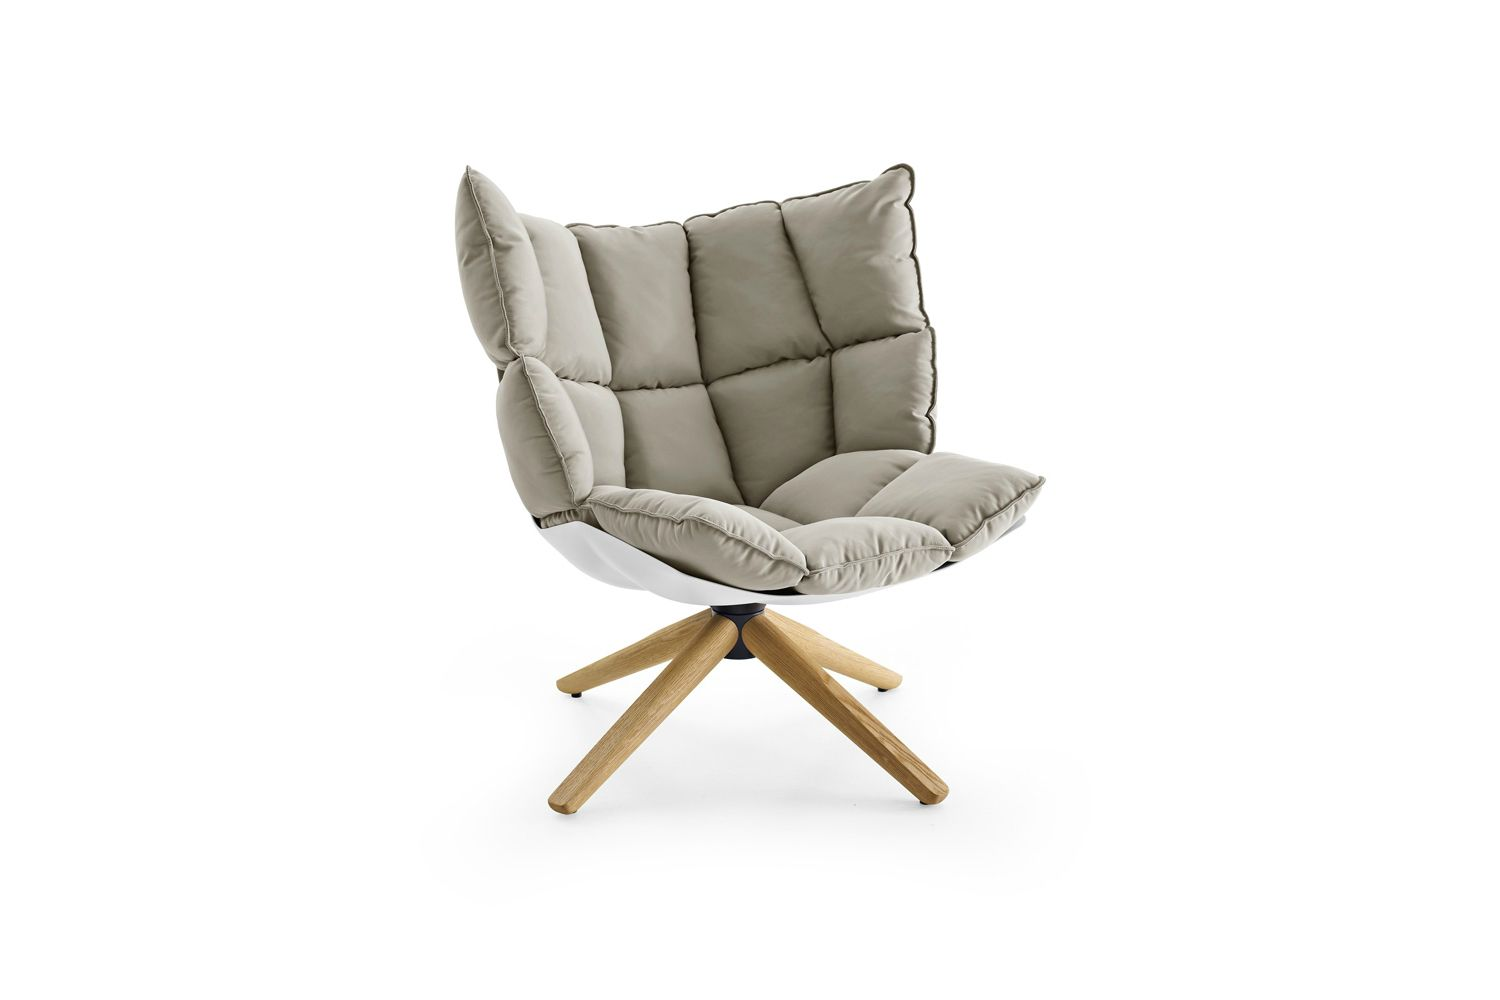 Husk Swivel Armchair With Snug Sides In Light Fabric From Space Furniture Fabric Armchairs Armchair Patricia Urquiola